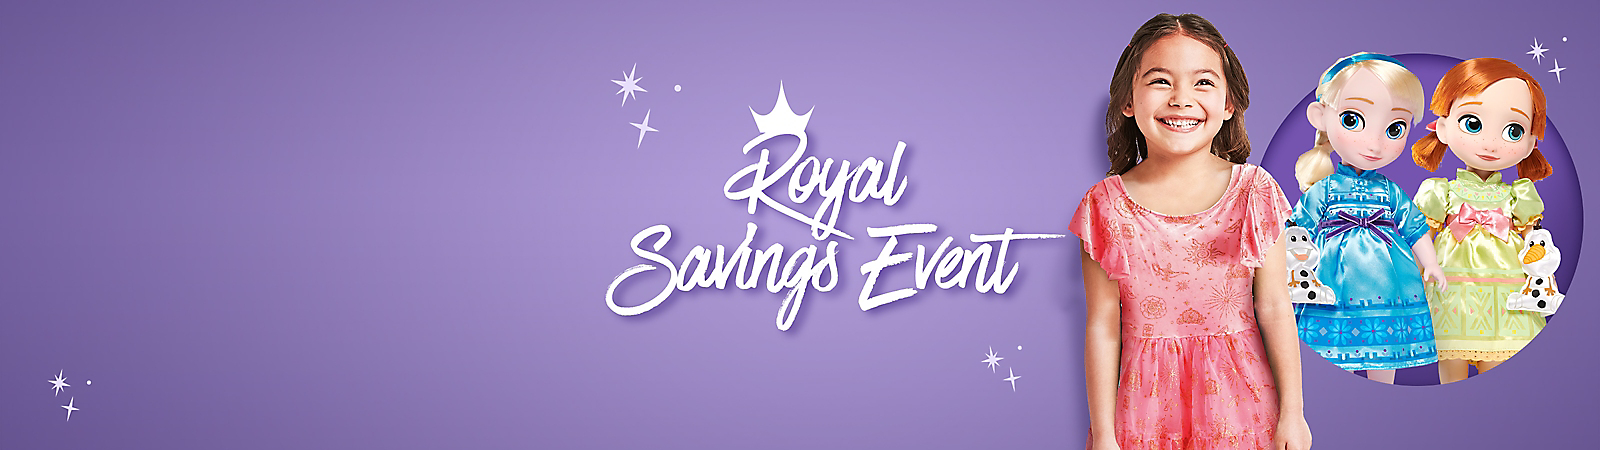 Background image of Royal Savings Event